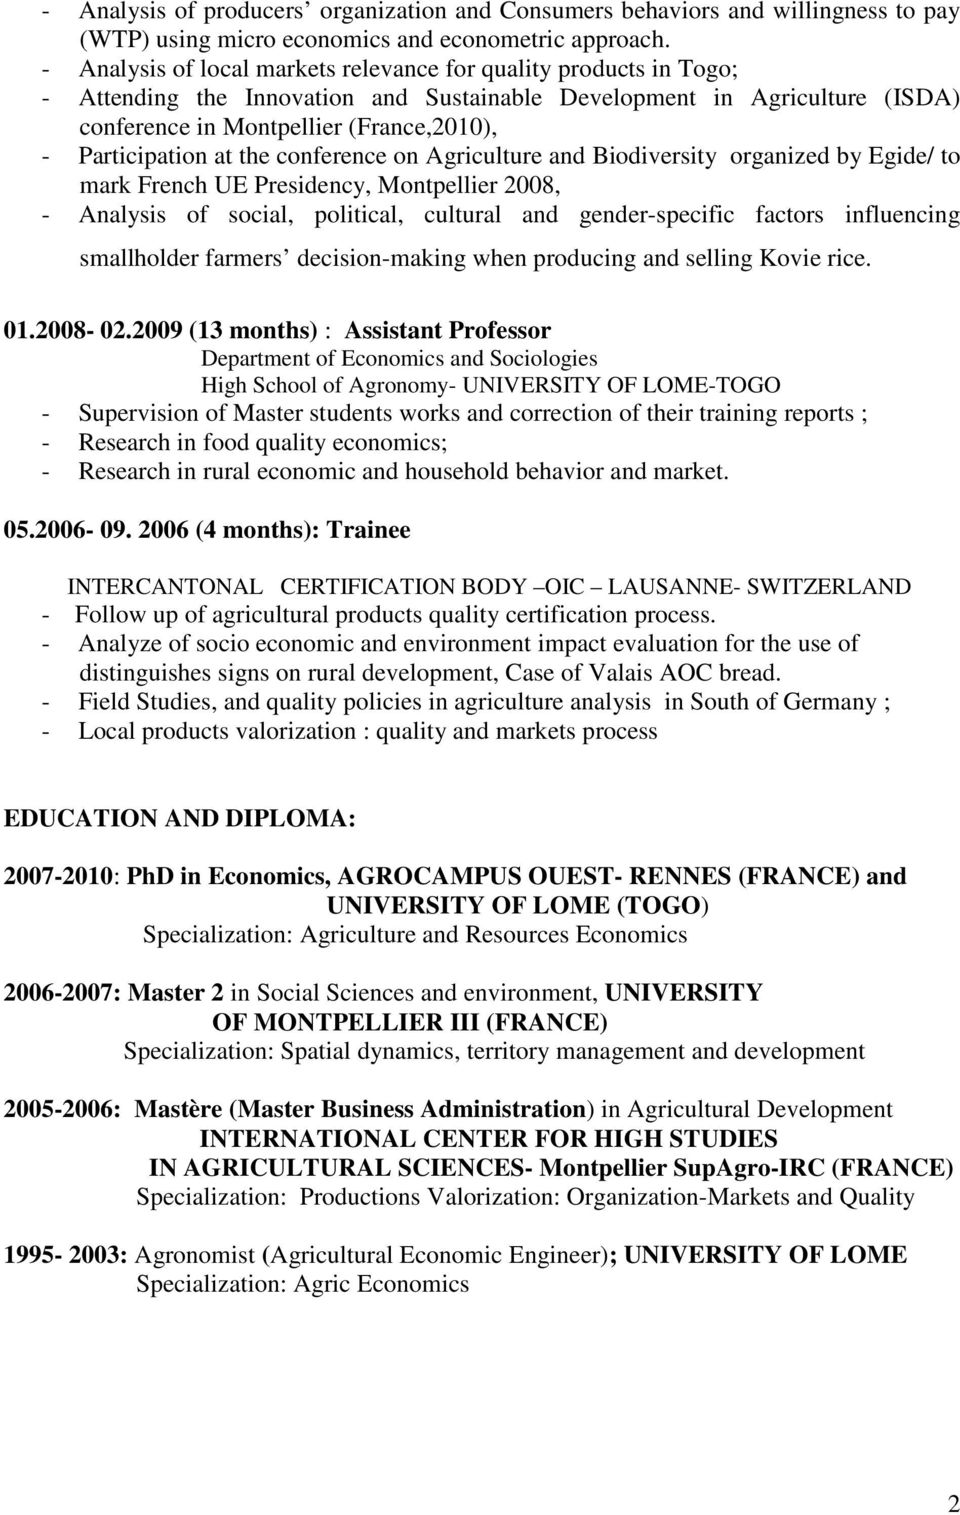 Participation at the conference on Agriculture and Biodiversity organized by Egide/ to mark French UE Presidency, Montpellier 2008, - Analysis of social, political, cultural and gender-specific